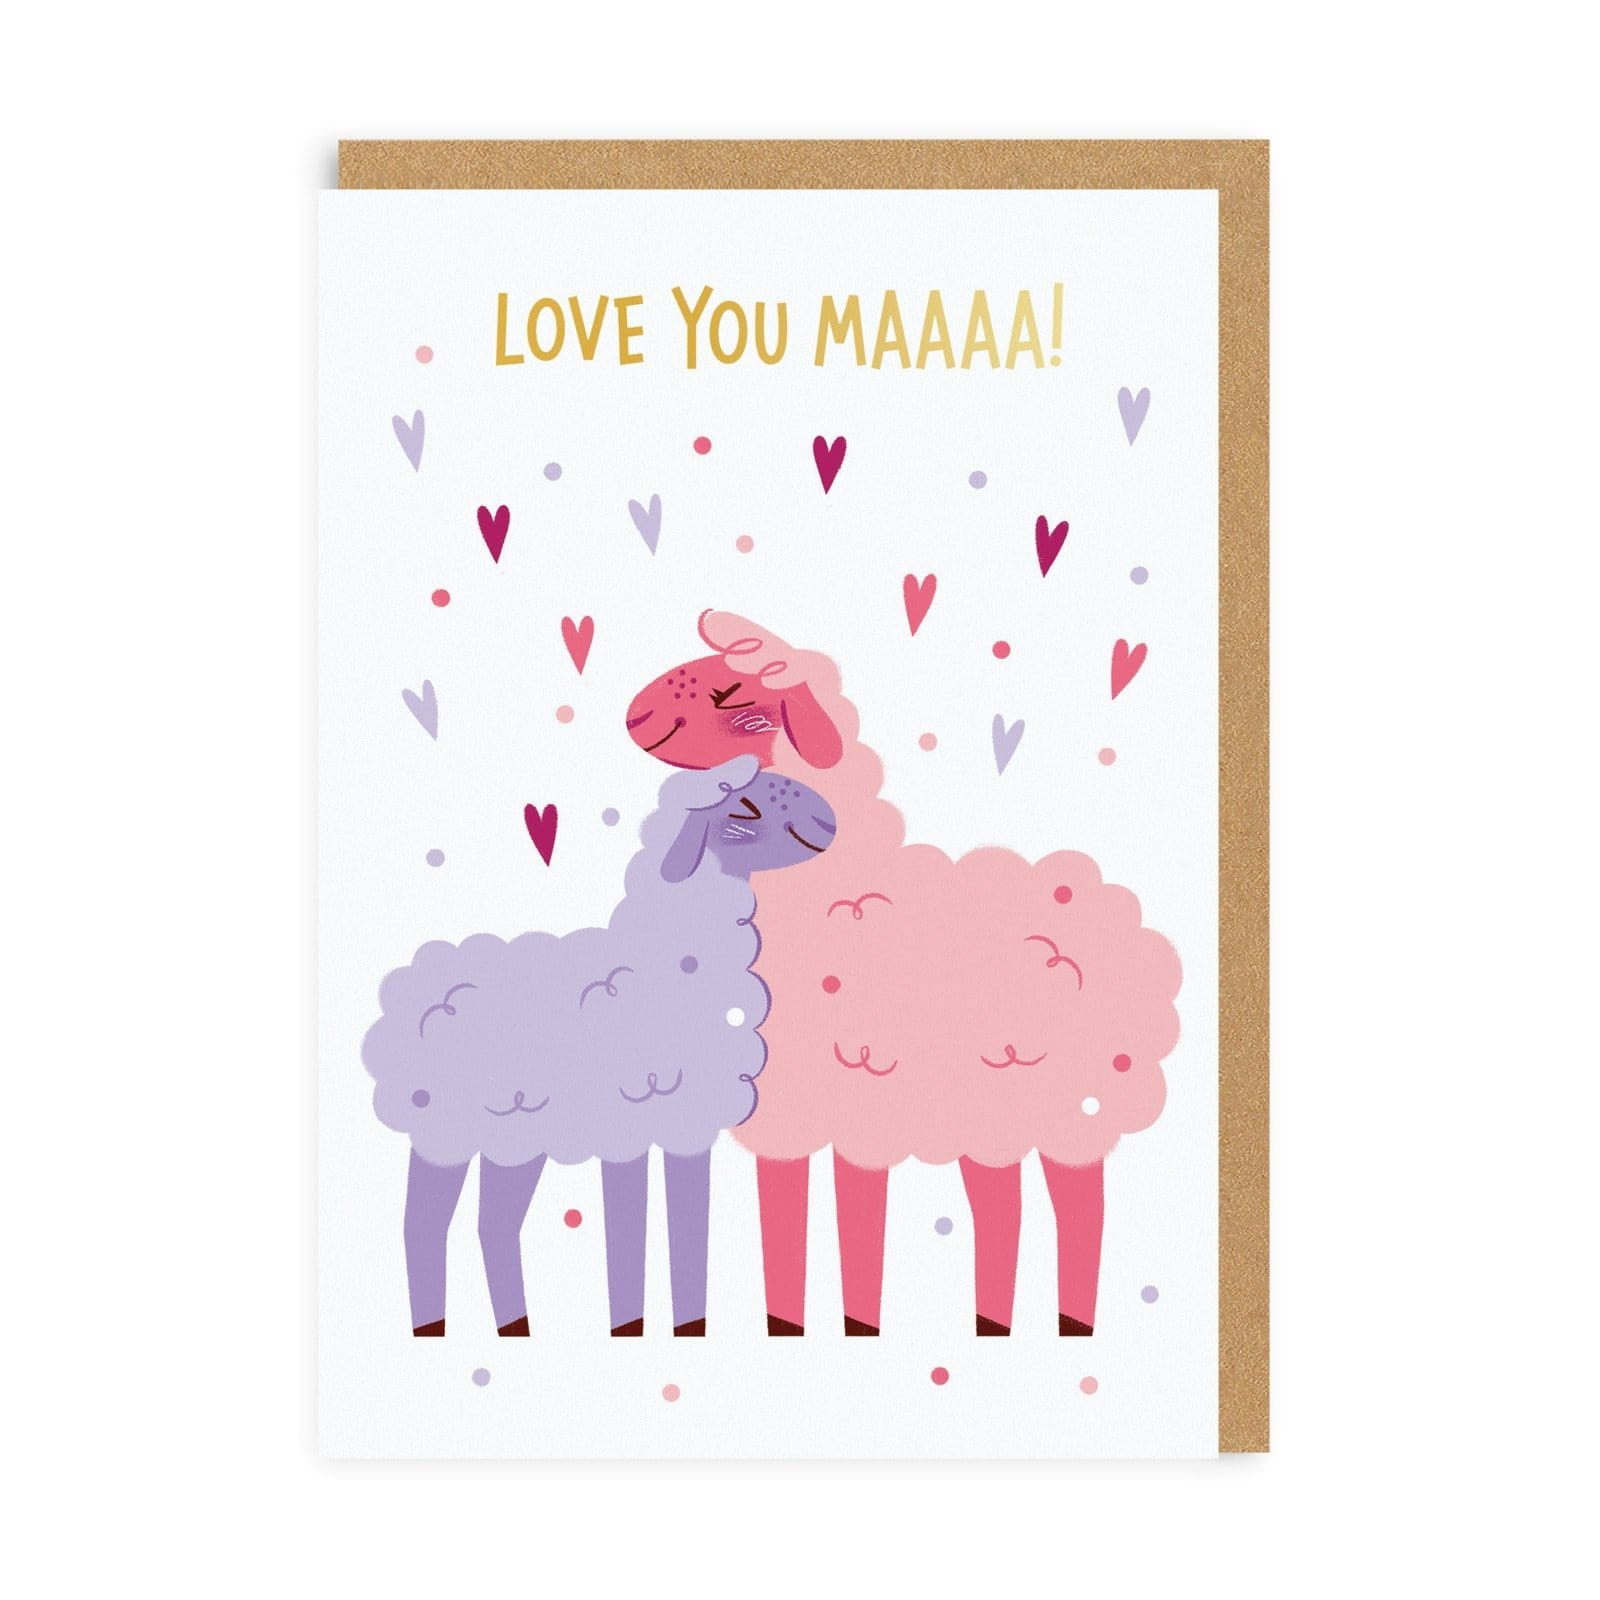 Love You Maaa! Greeting Card